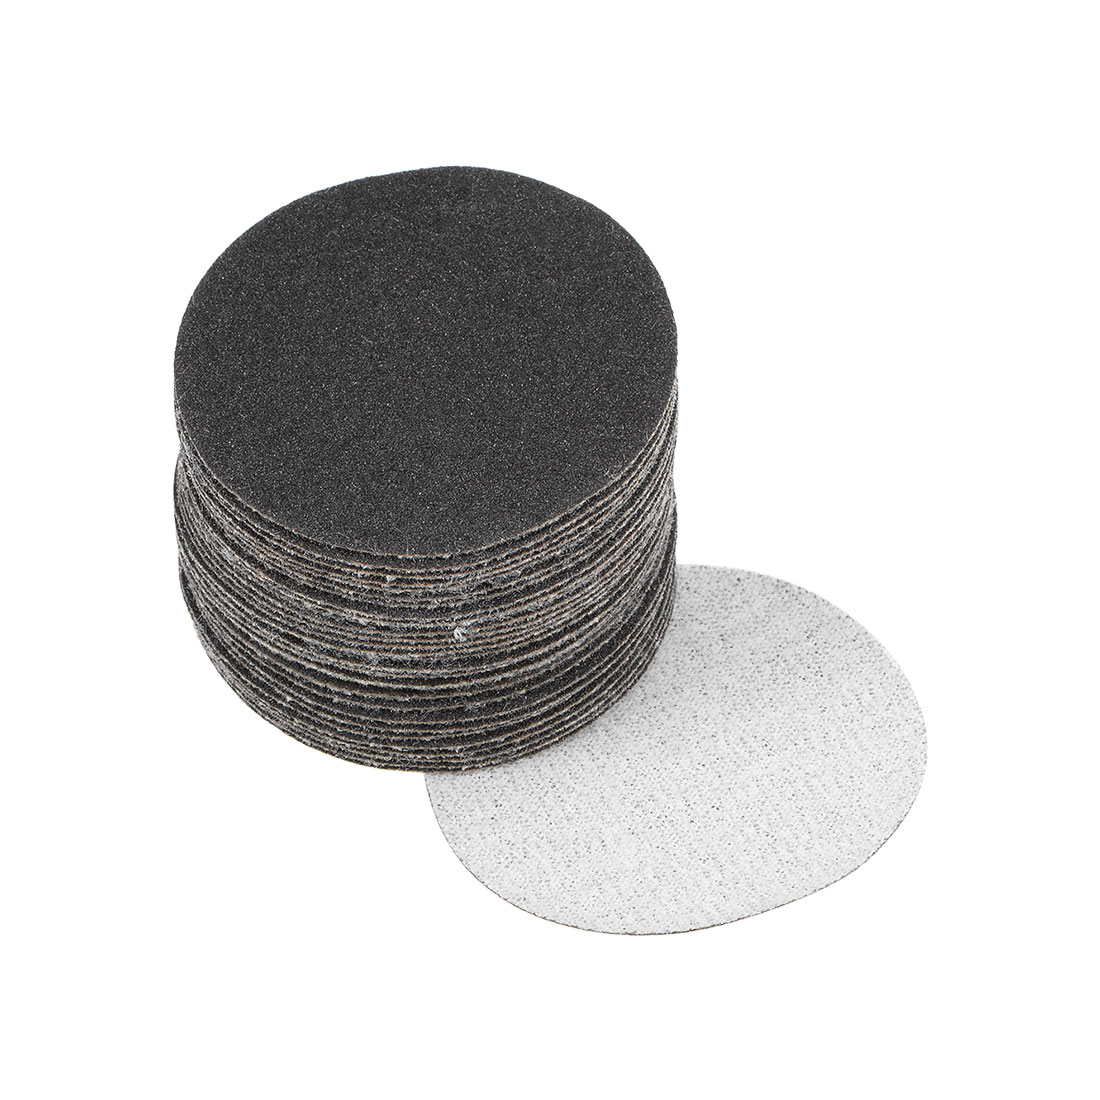 2 inch Wet Dry Discs 180 Grit Hook and Loop Sanding Disc Silicon Carbide 30pcs